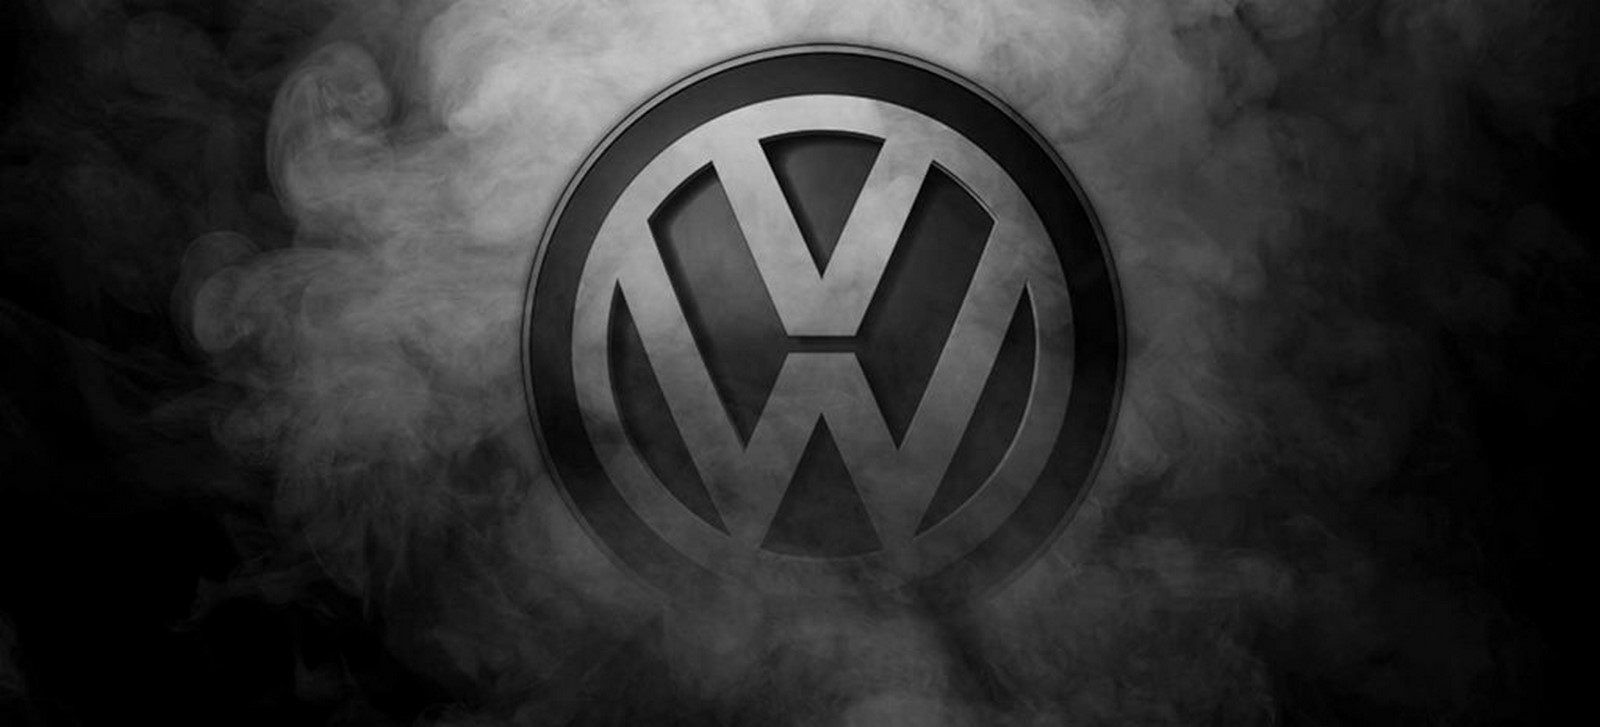 10 Things you did not know about Volkswagen - Sheet8